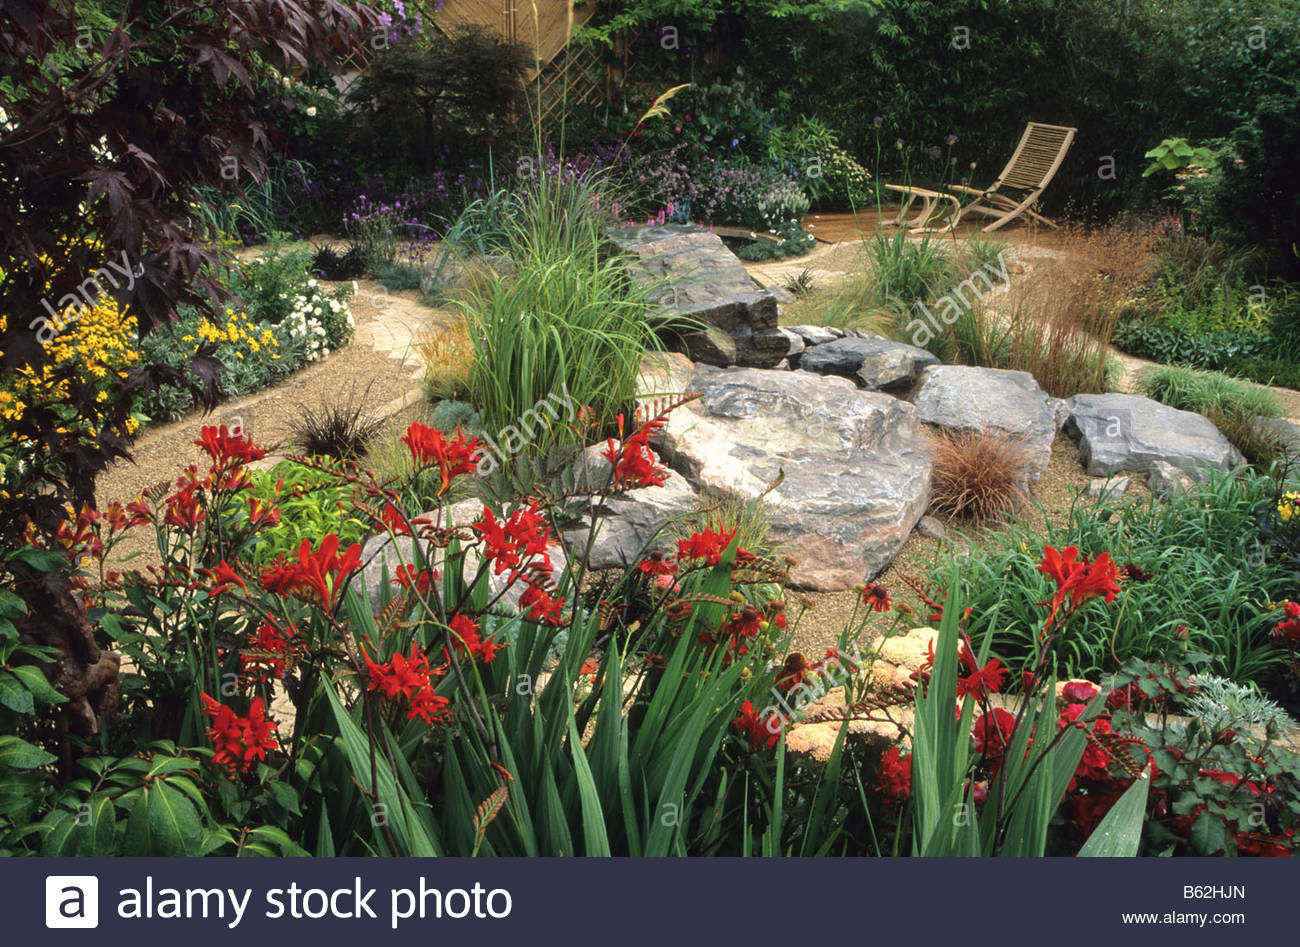 Feng shui garden design pamela woods red border with for Feng shui garden designs